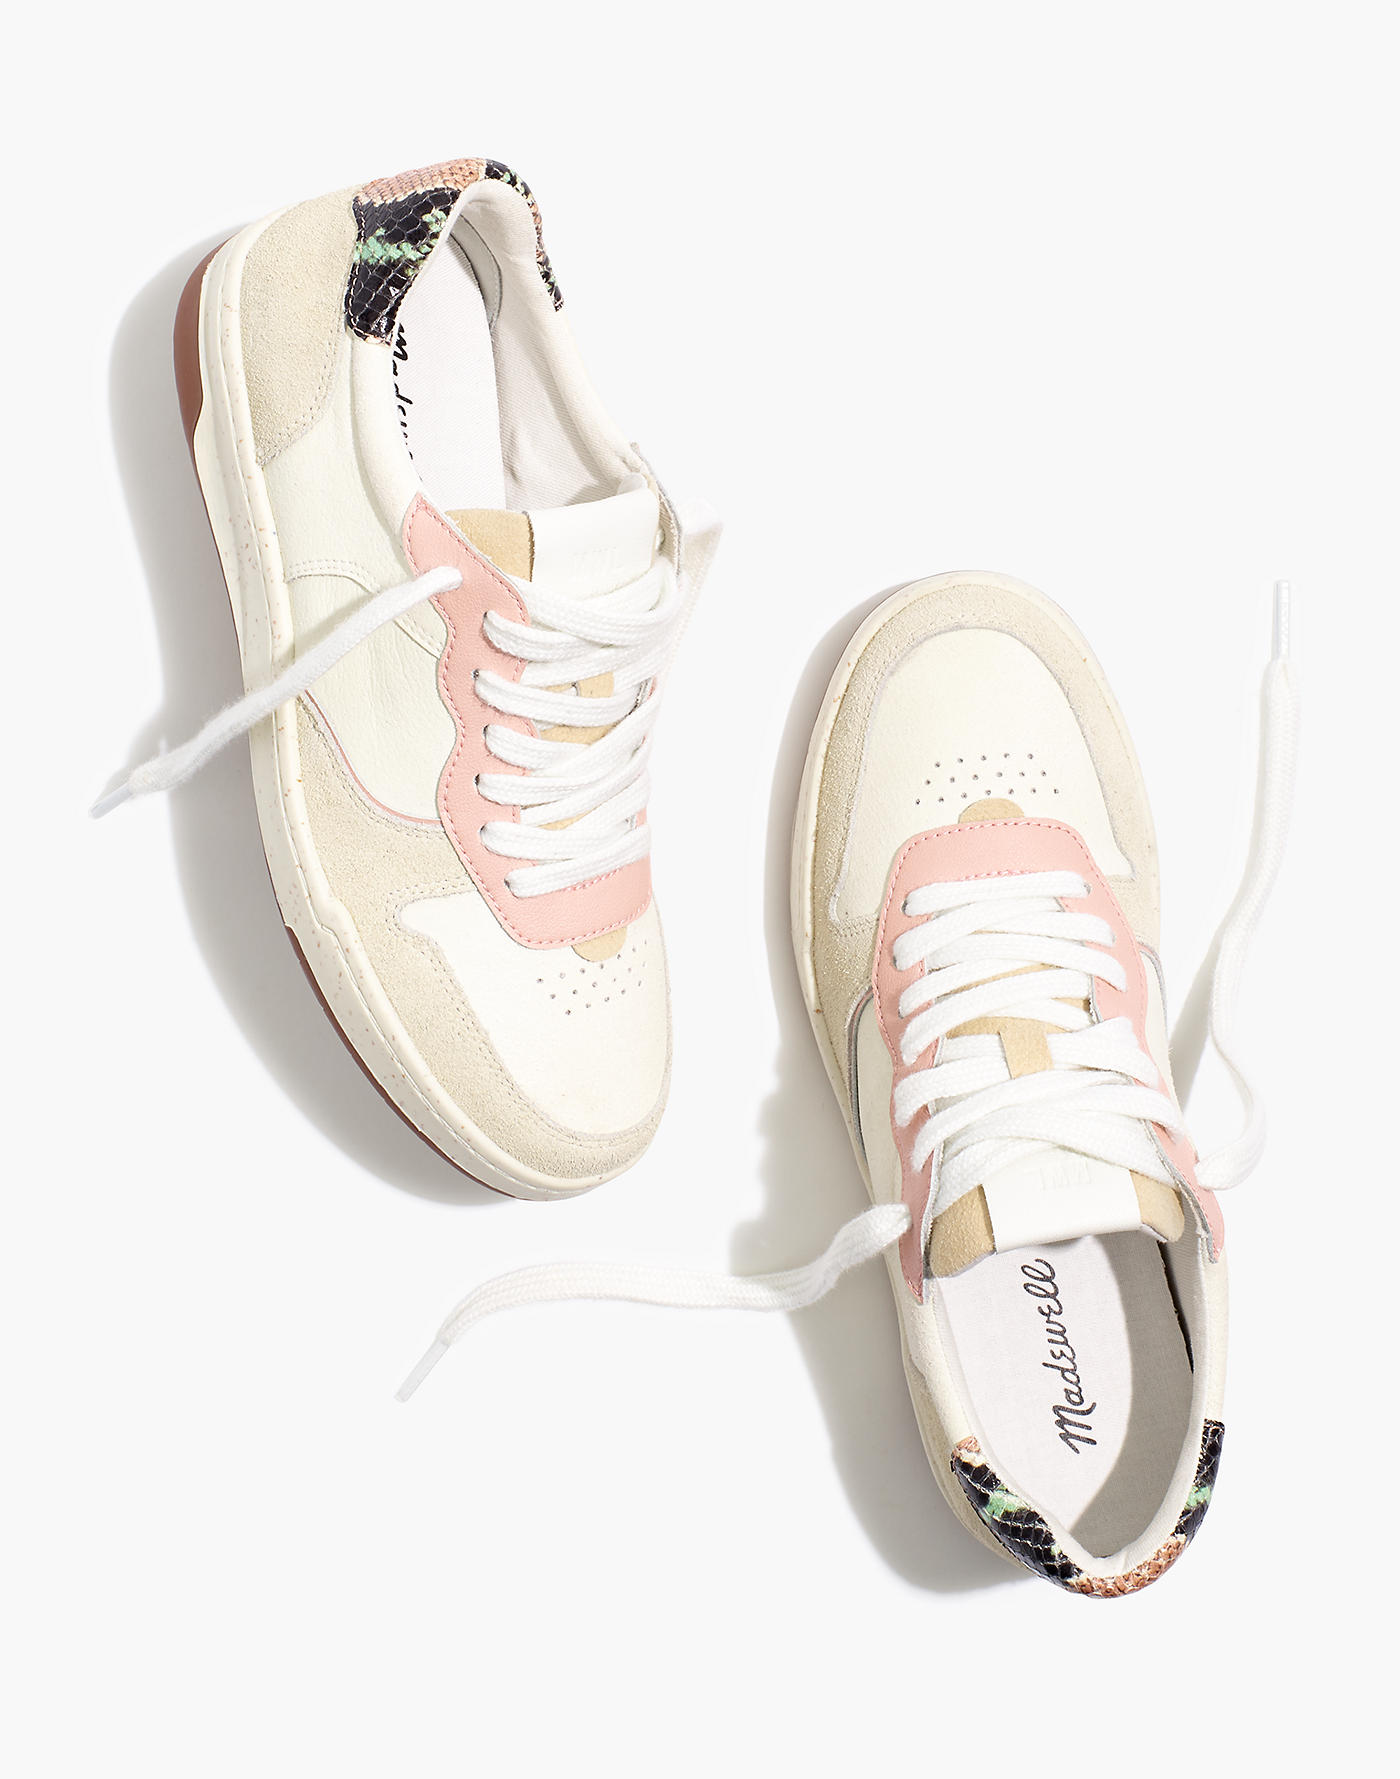 Madewell the court sneakers